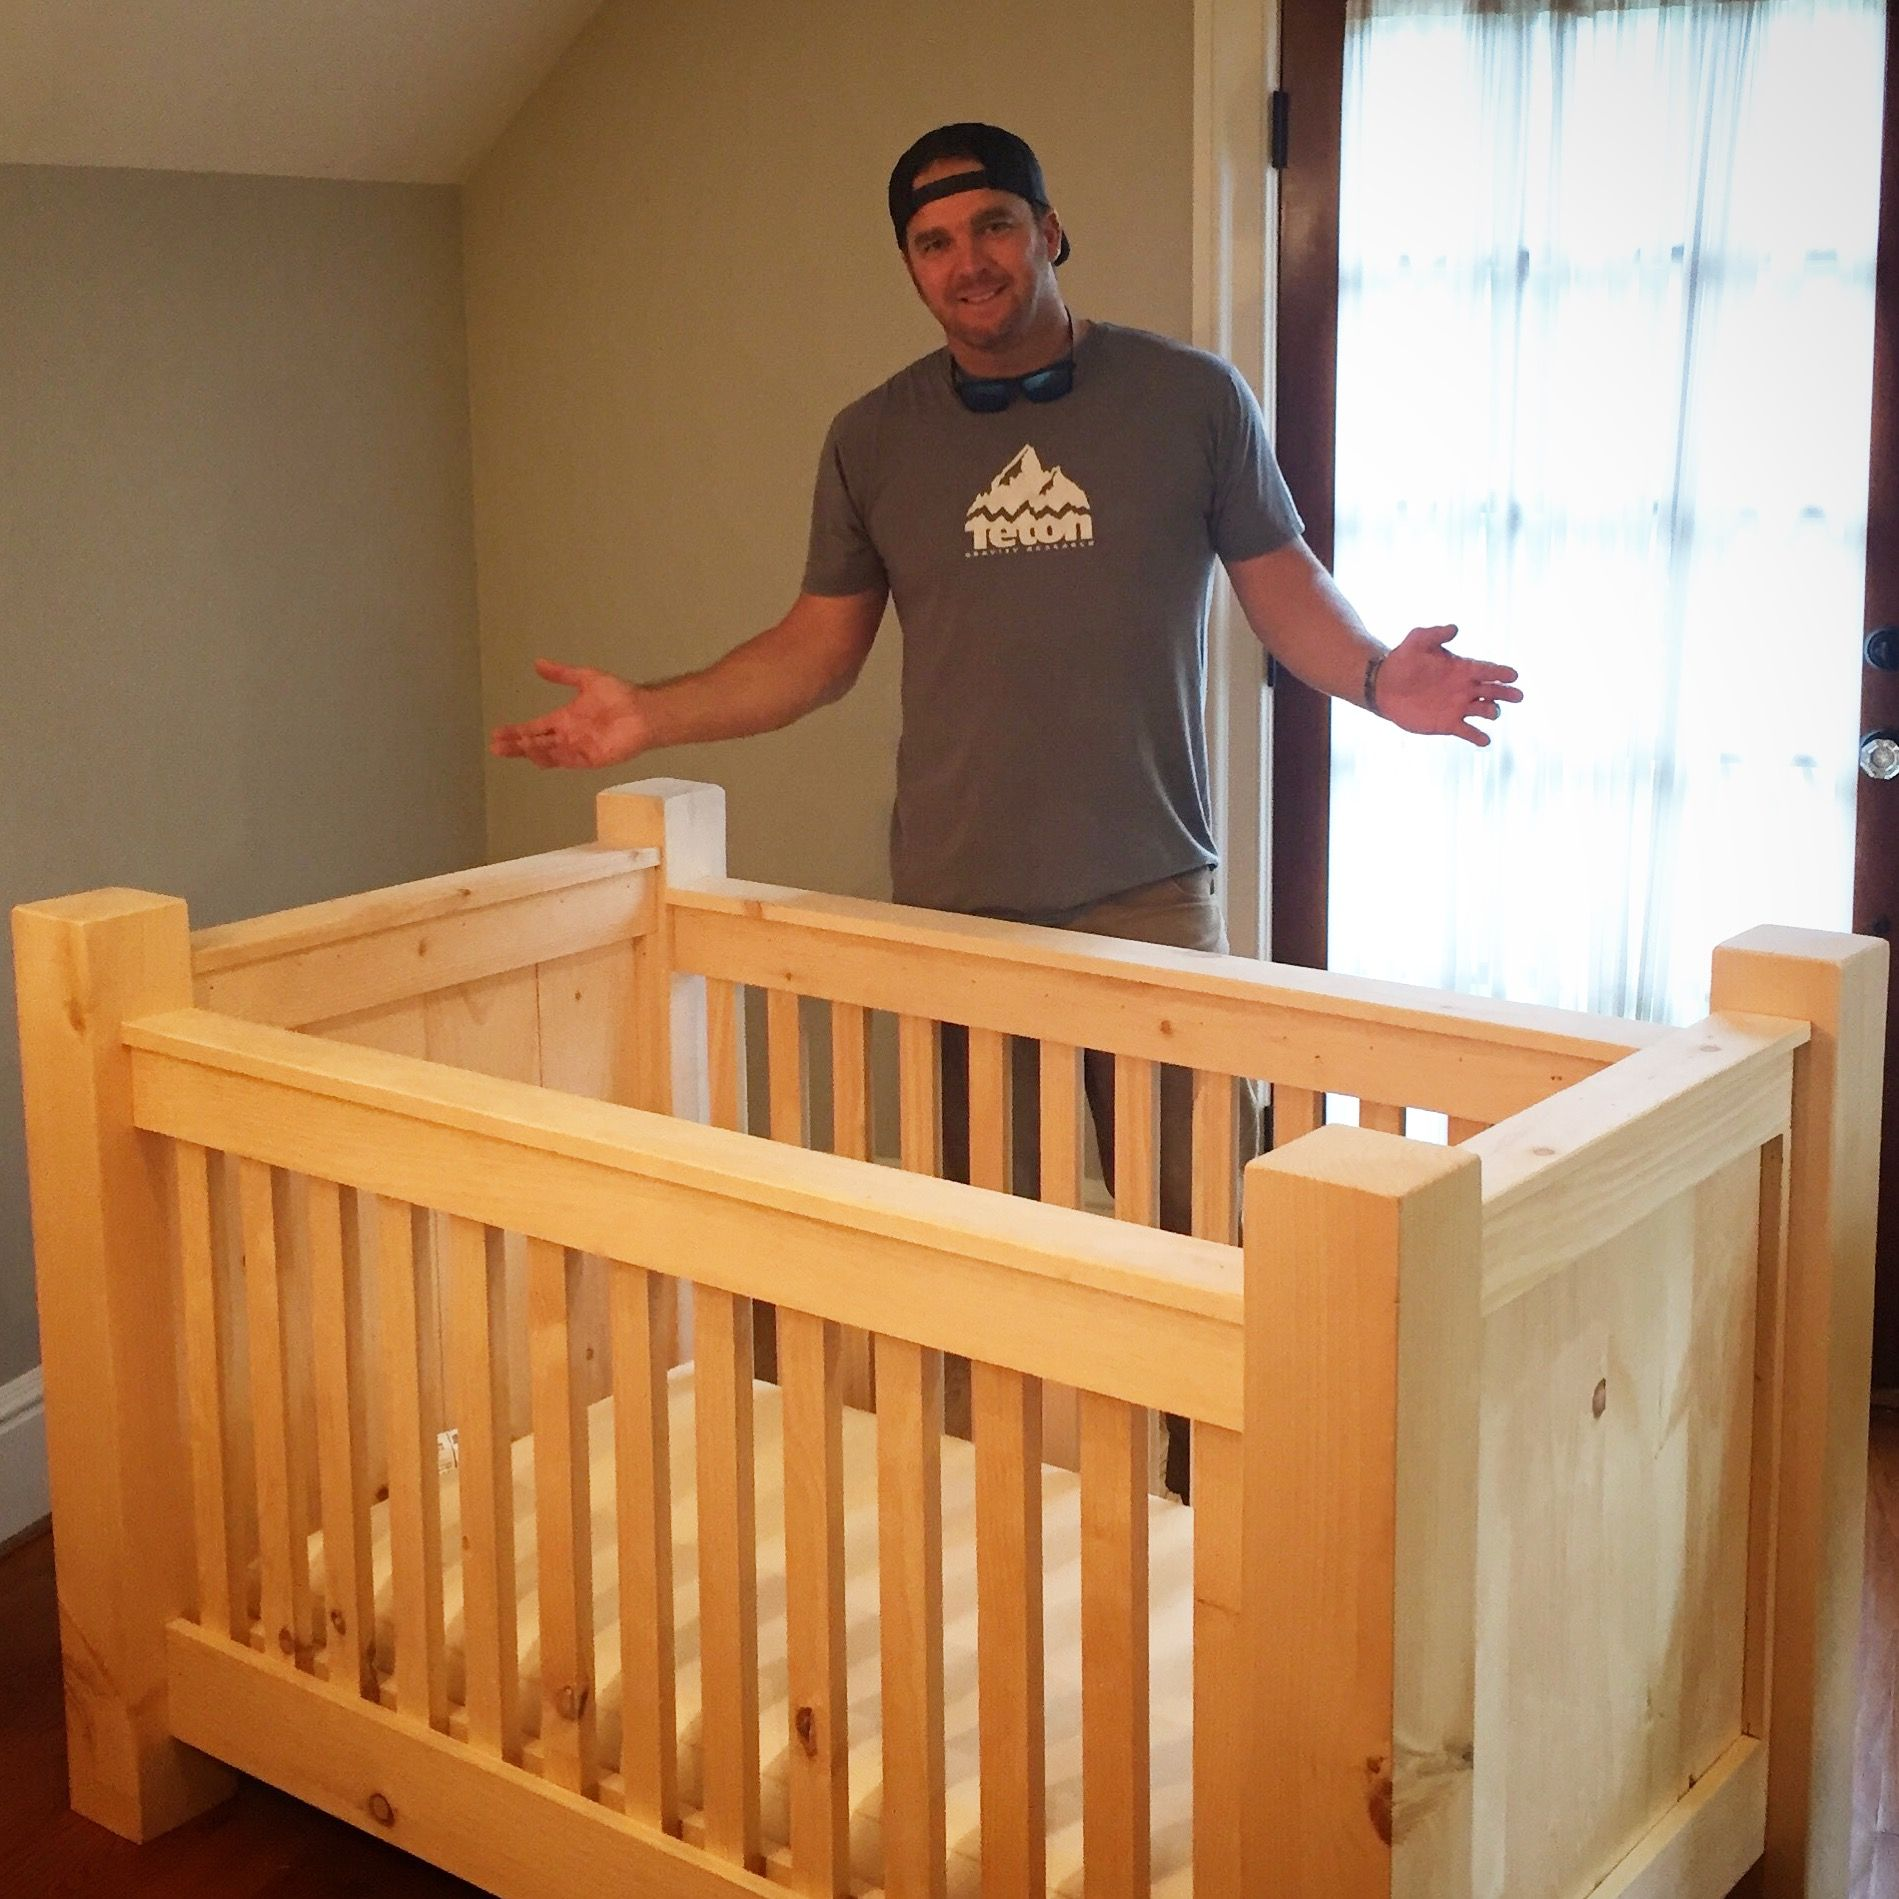 My Rustic Homemade Diy Baby Crib For Our Dudes Mountain Ski Themed